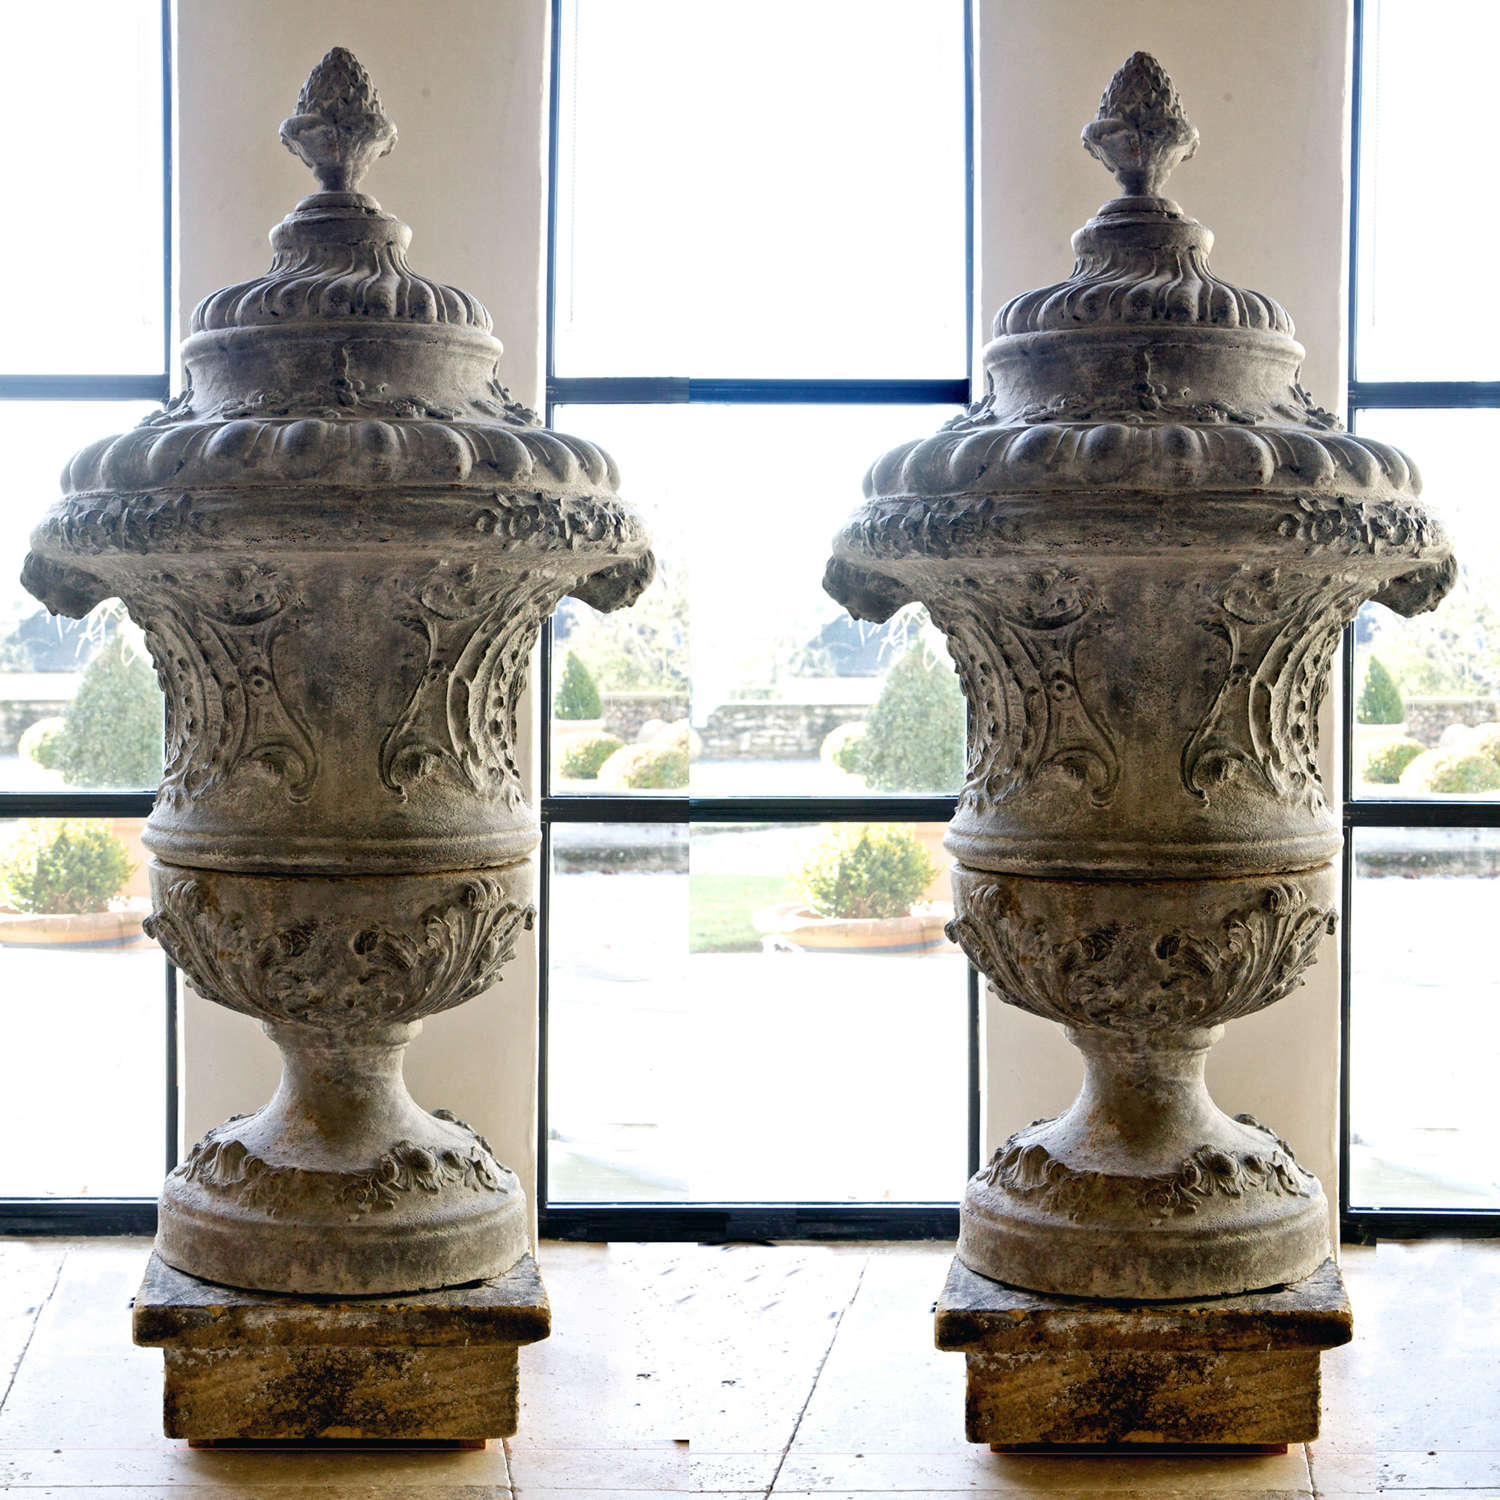 Pair of 18th century Louis XIV cast iron Urns